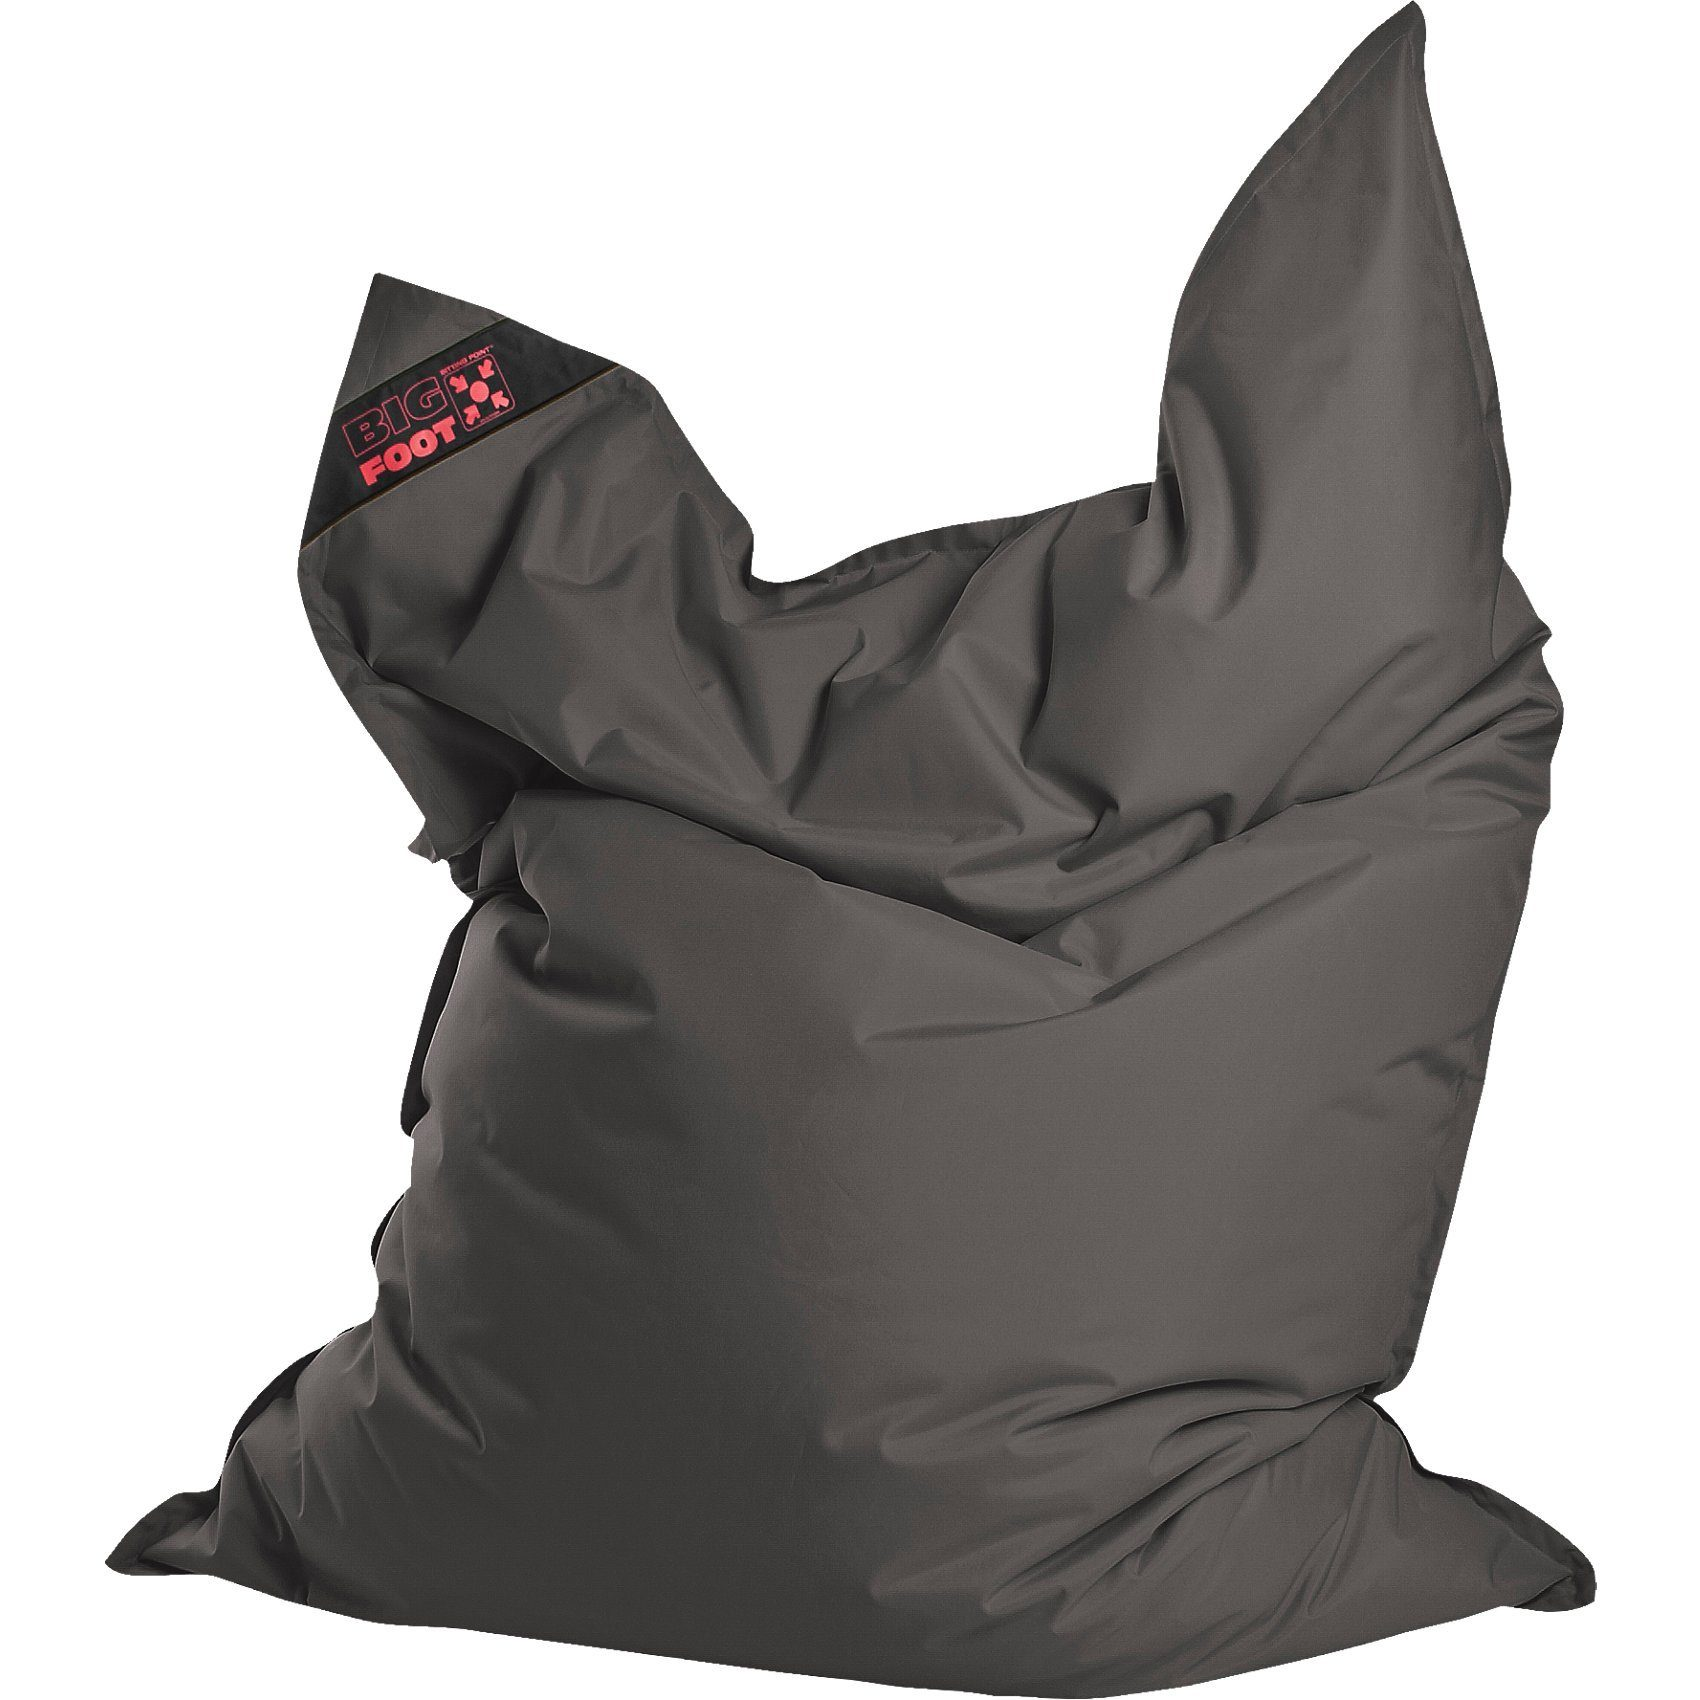 Sitting Point Sitzsack BIGFOOT SCUBA, 130 x 170 cm, anthrazit